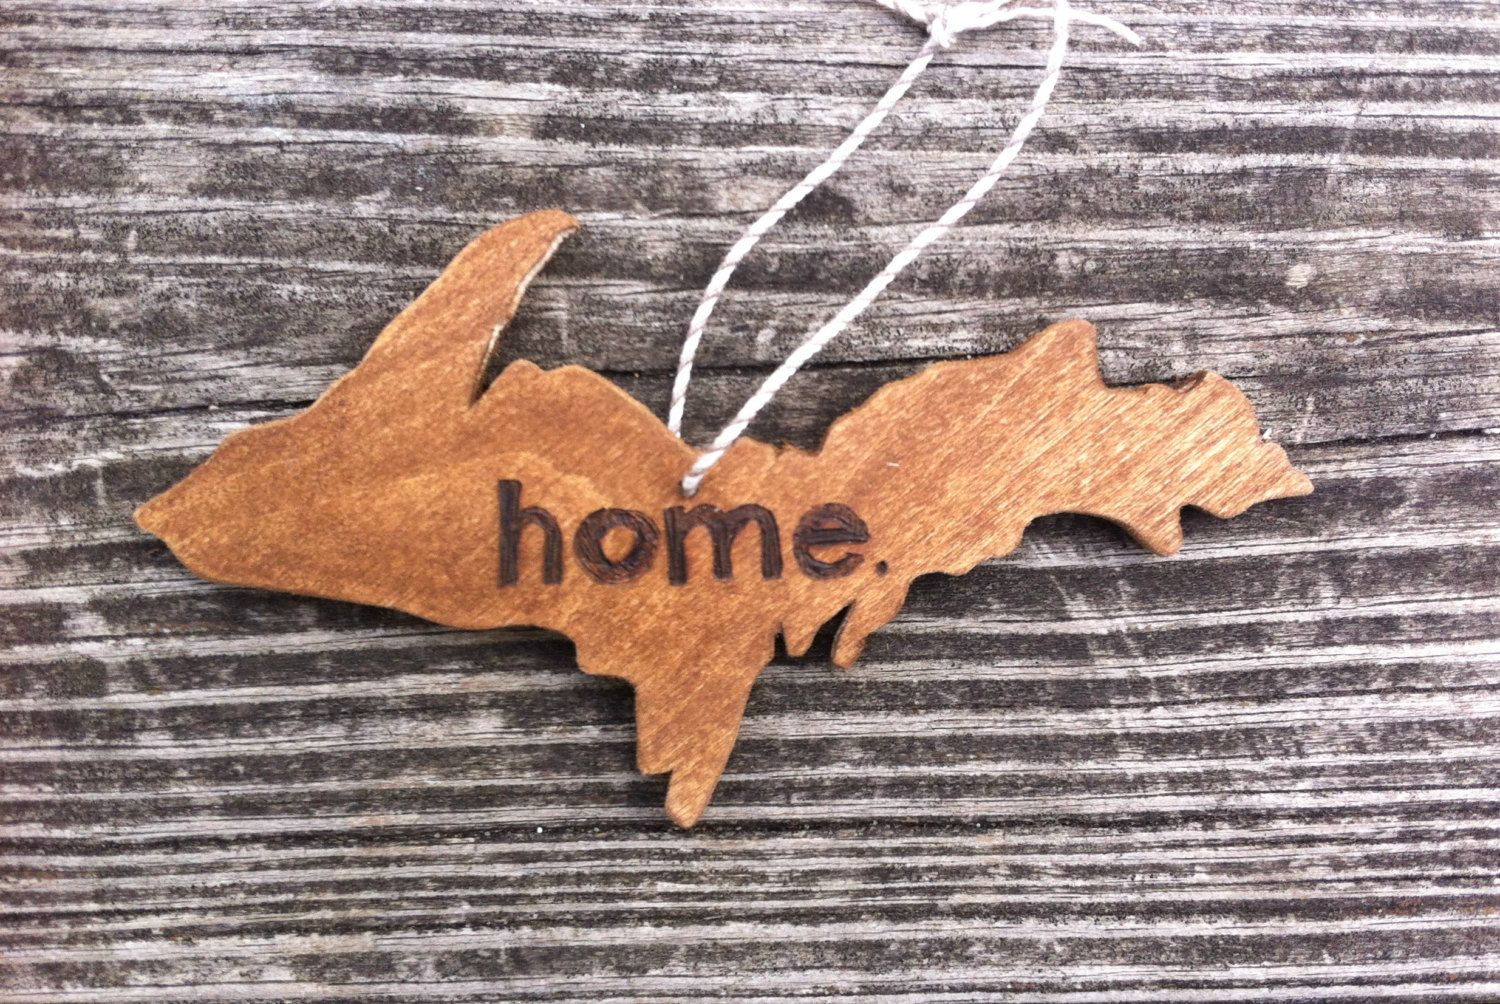 Michigan Gift Idea Handmade Home Decor From Wood By Al Upper